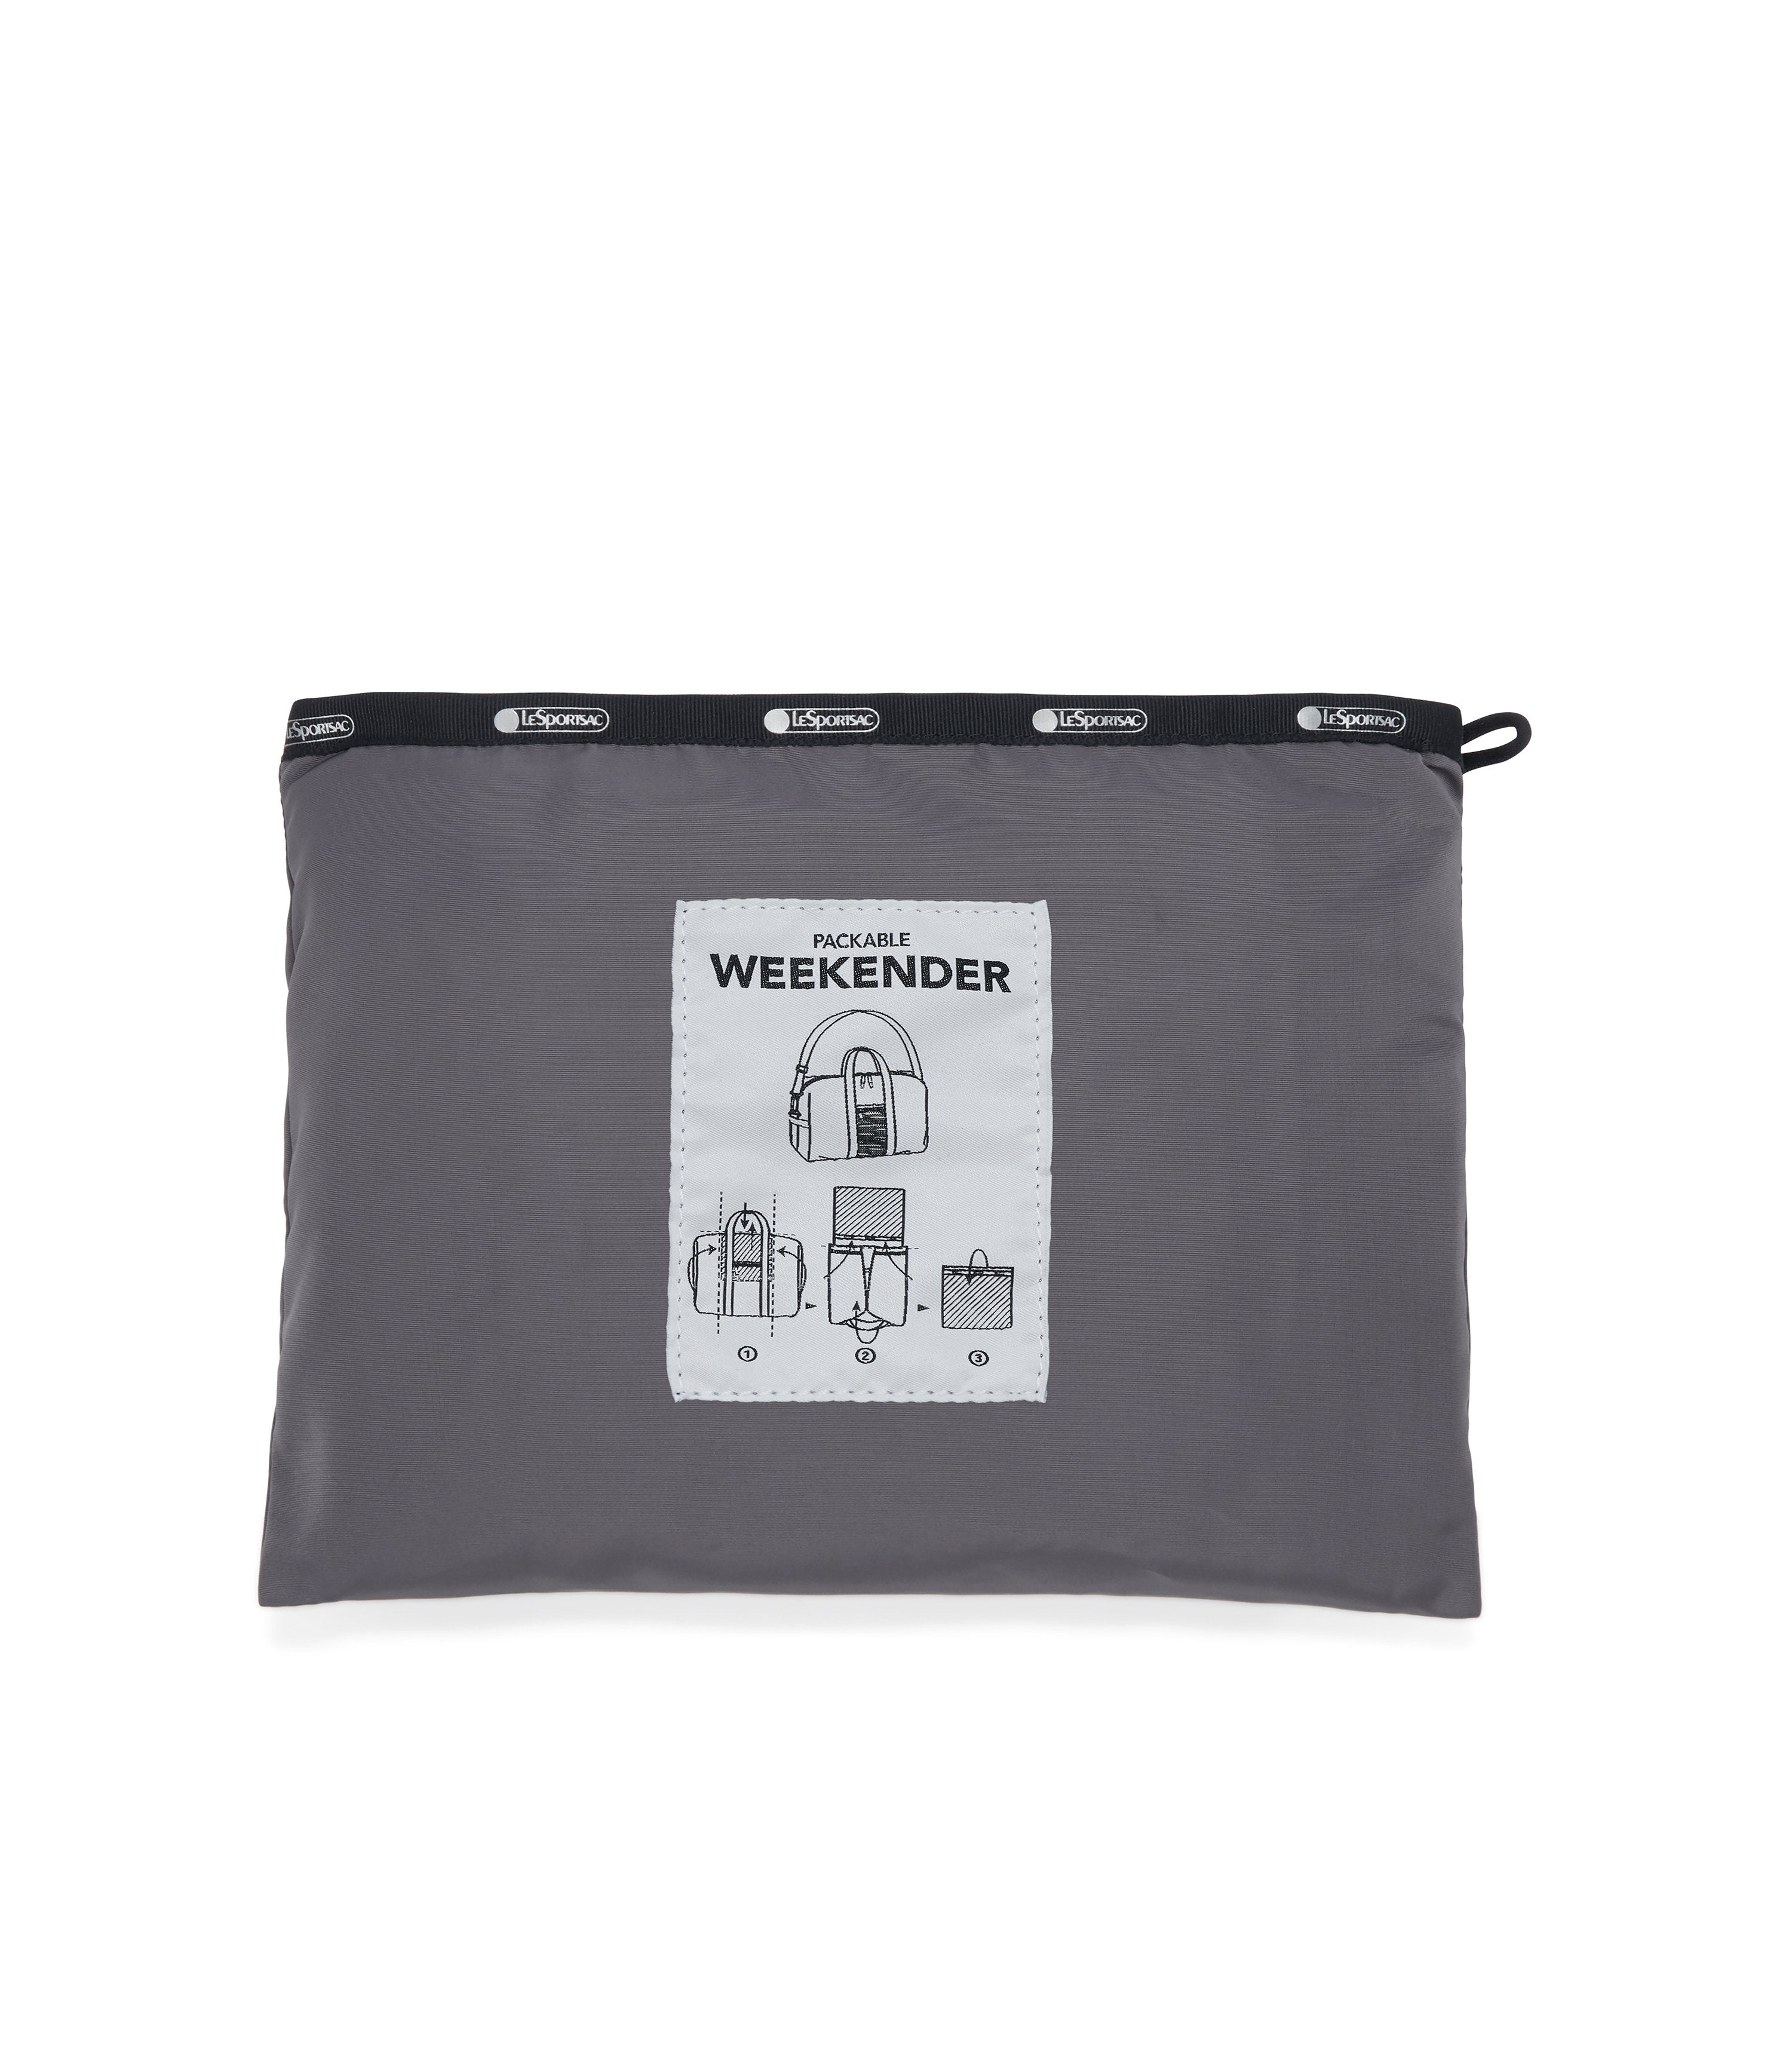 Weekenders - Pouch Image